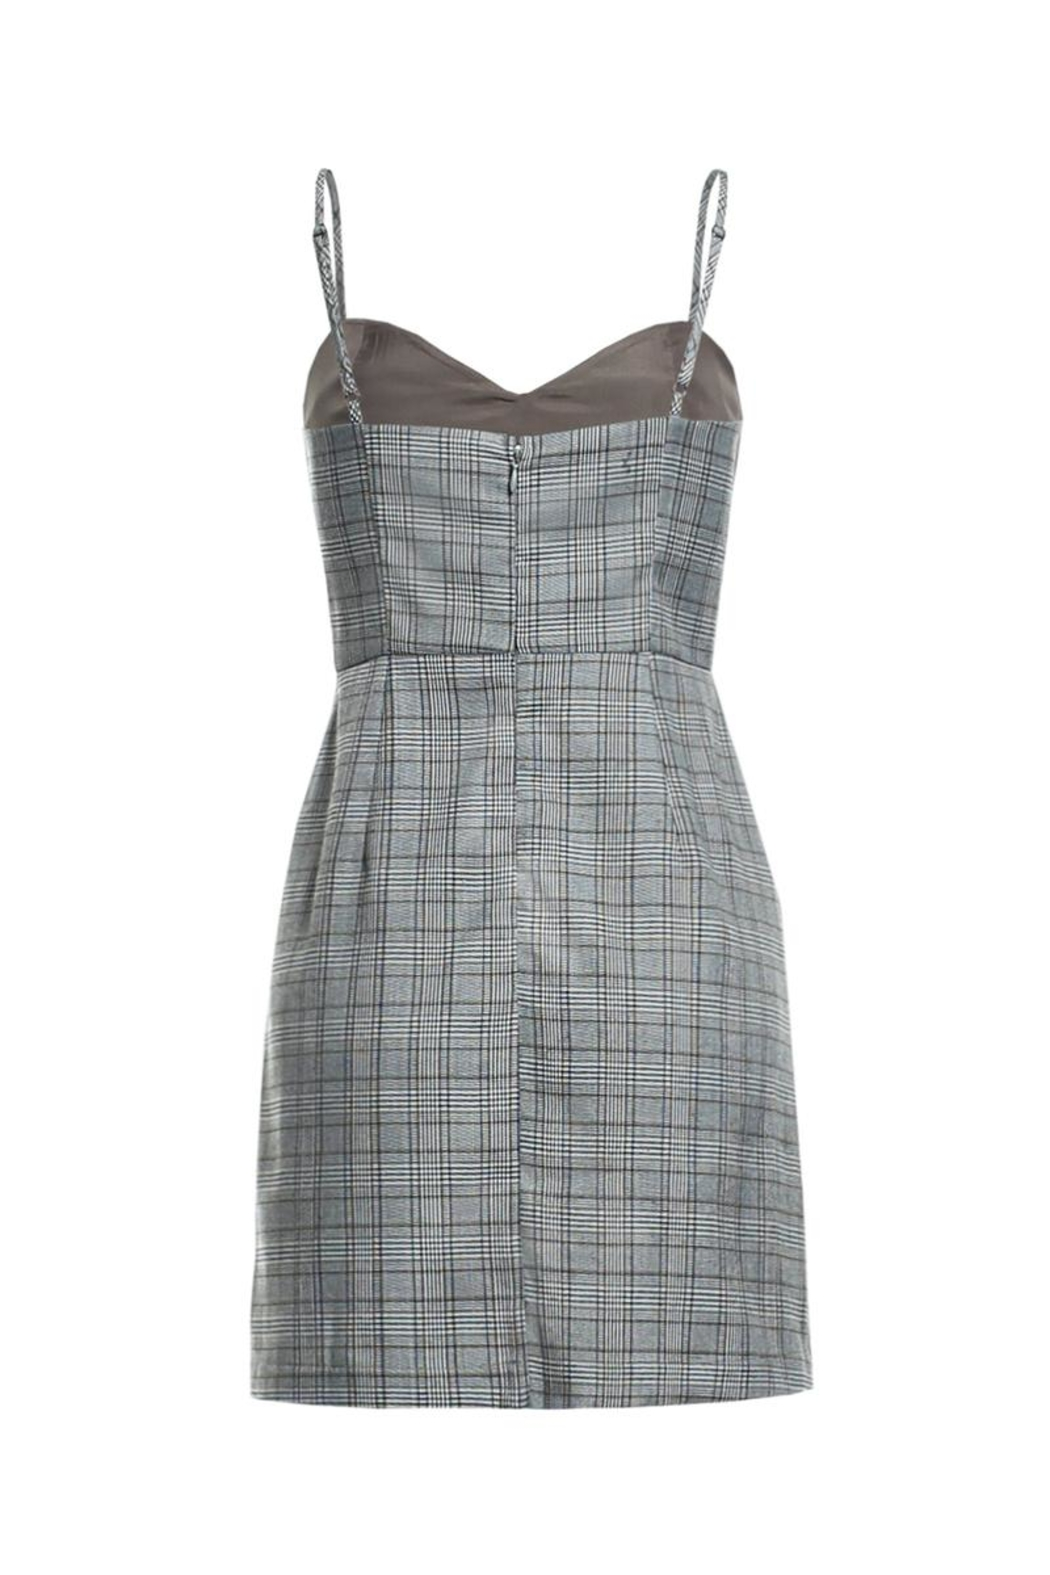 Renamed Clothing Plaid Spaghetti Strap Dress - Front Full Image